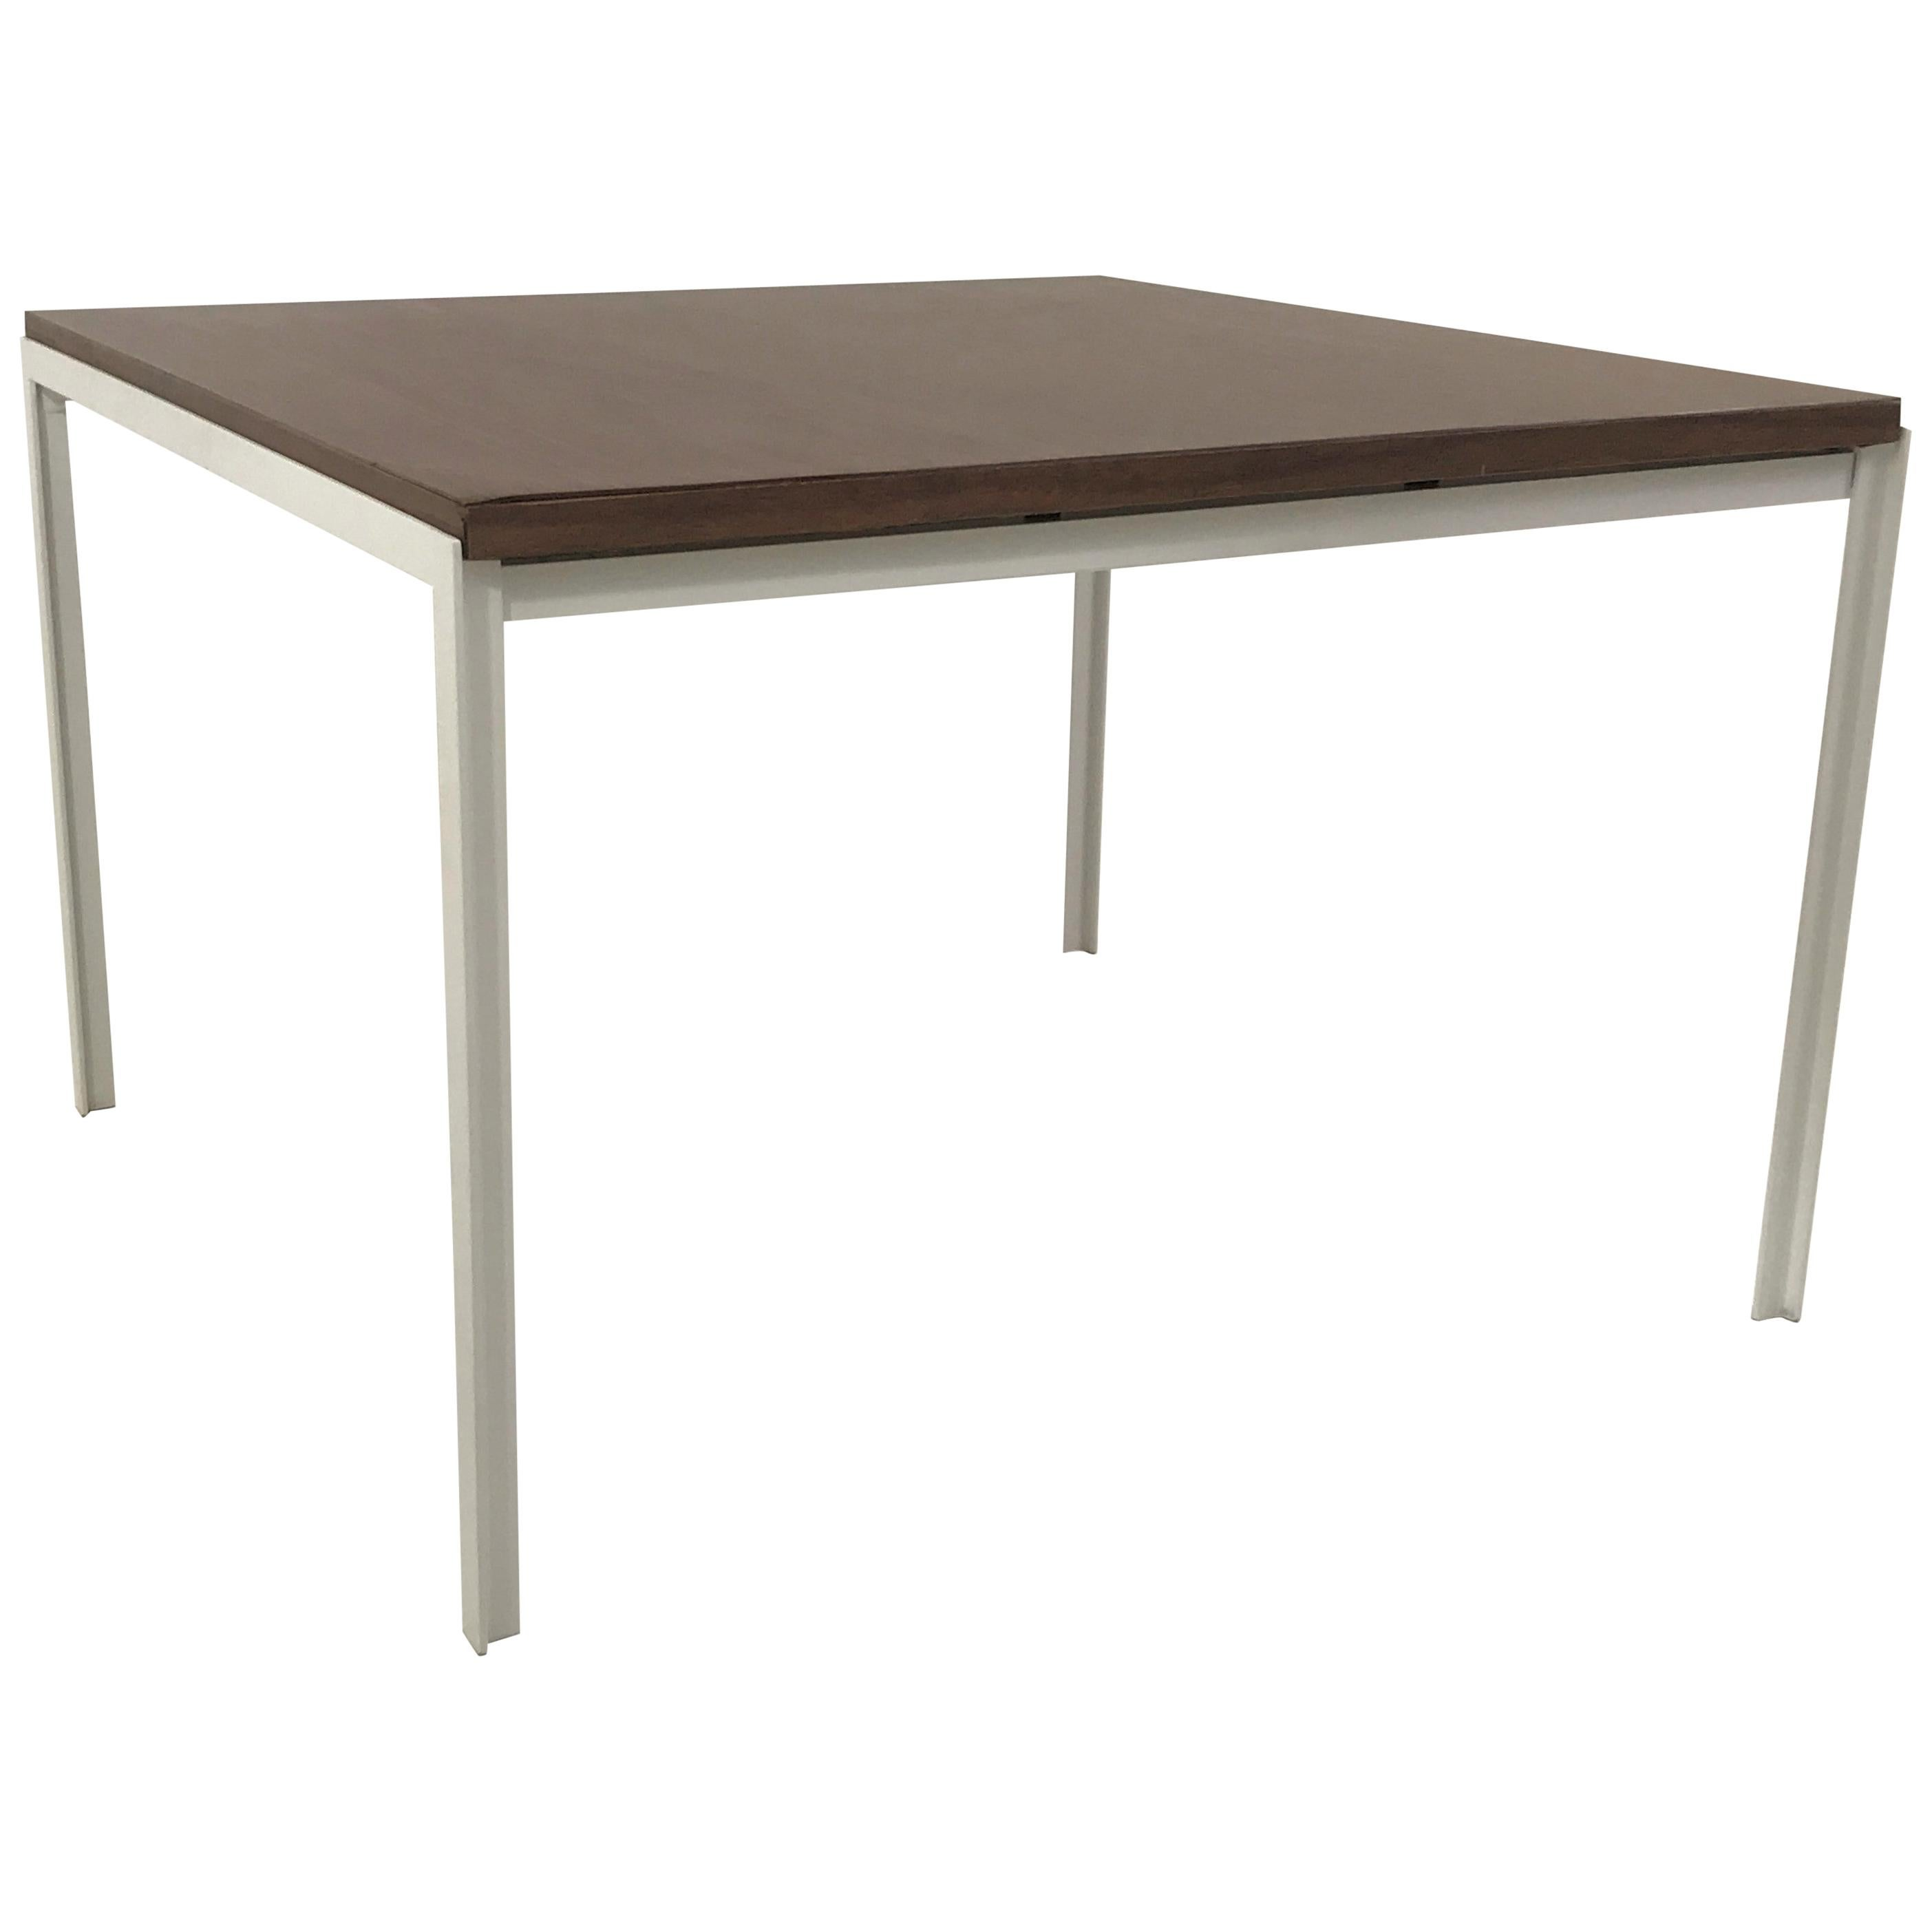 Florence Knoll T Angle Walnut Wood Grain Laminate Top Table for Knoll